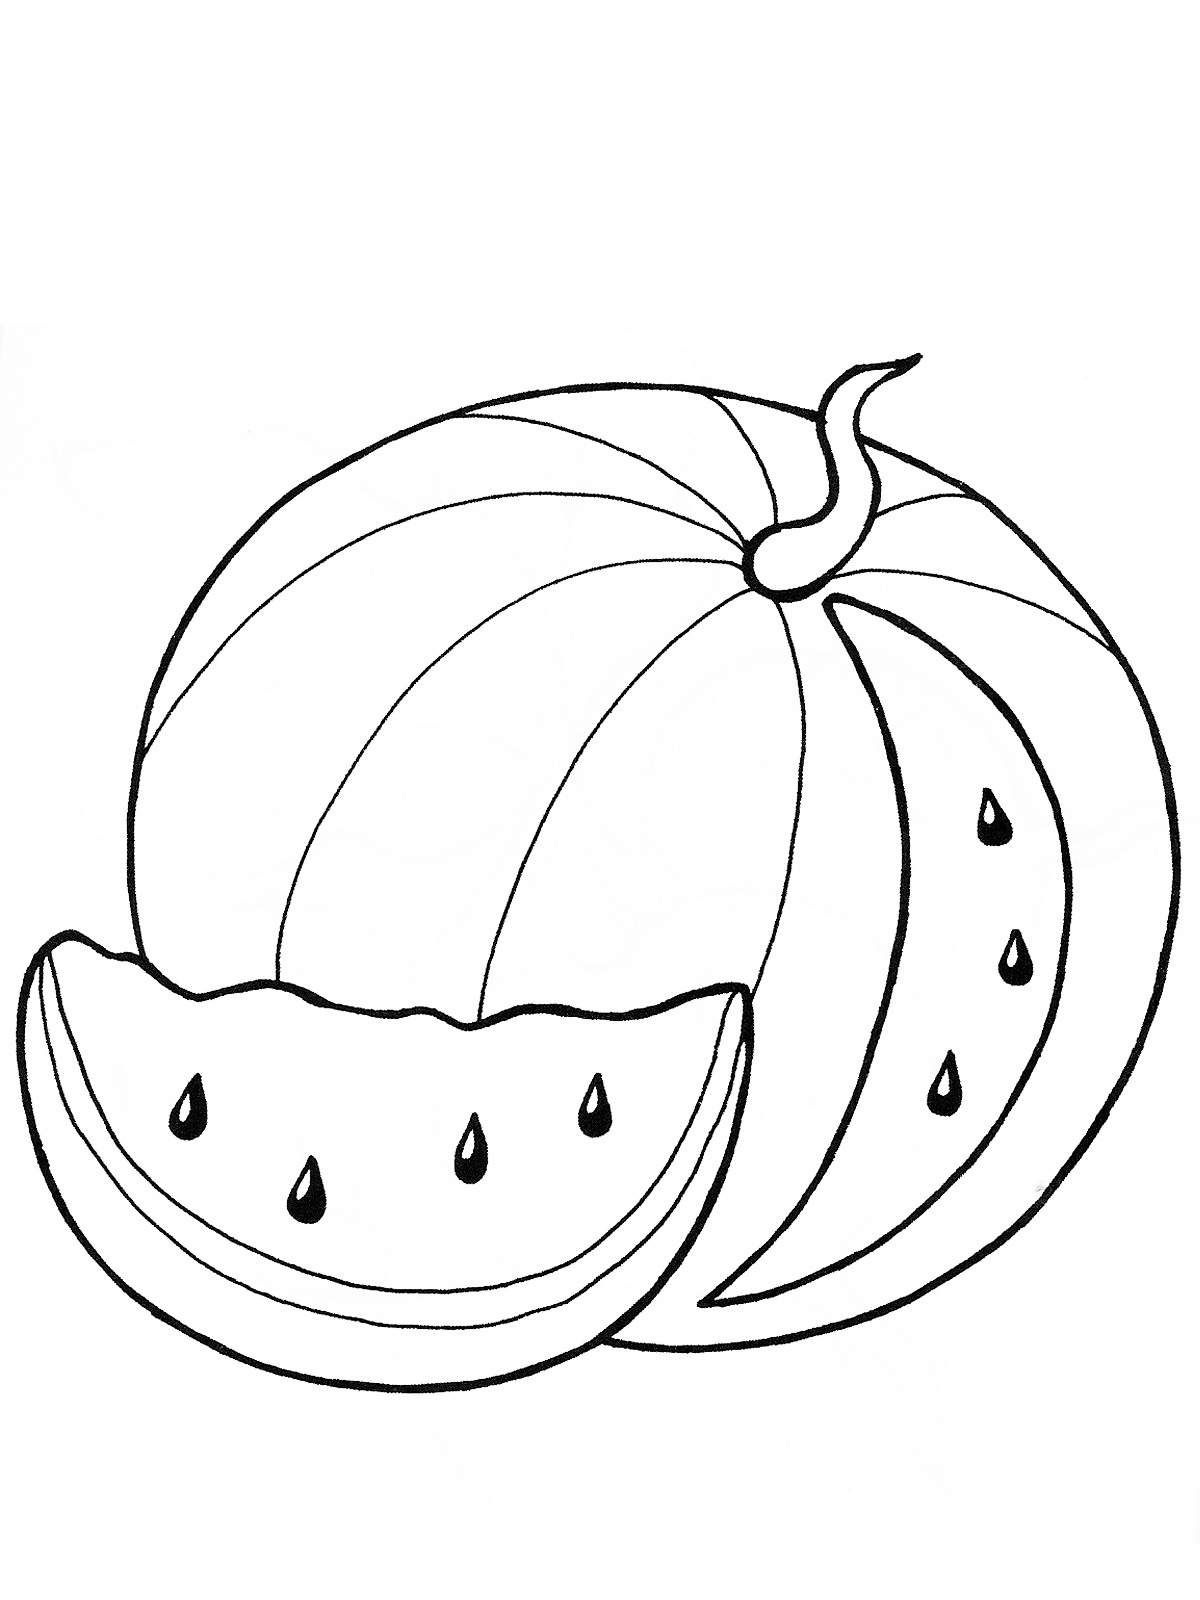 coloring pages watermelon watermelon coloring pages download and print watermelon pages coloring watermelon